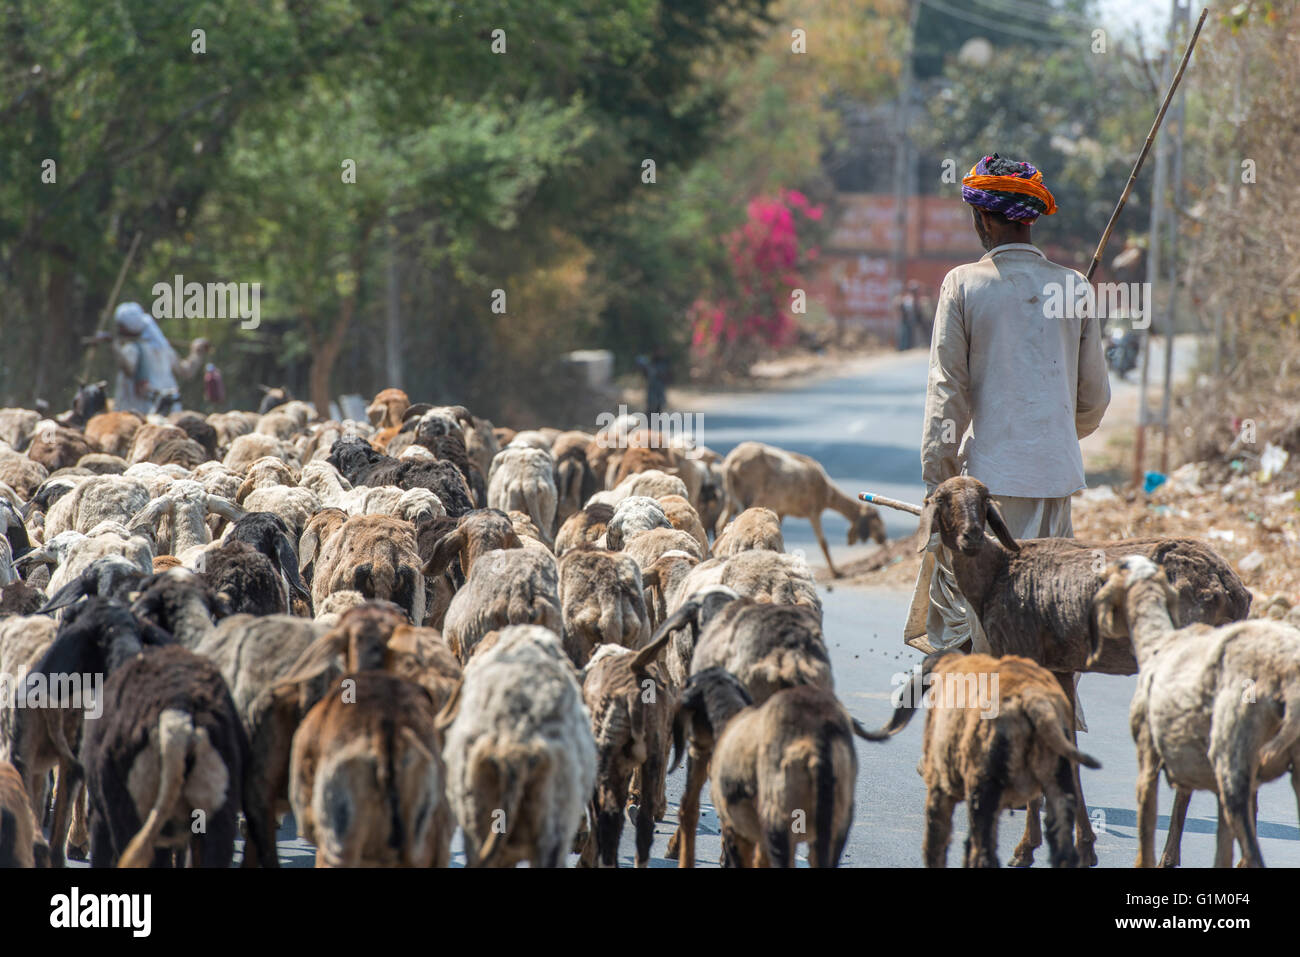 Rabari Nomad With Goats And Sheep, Eastern Gujarat - Stock Image